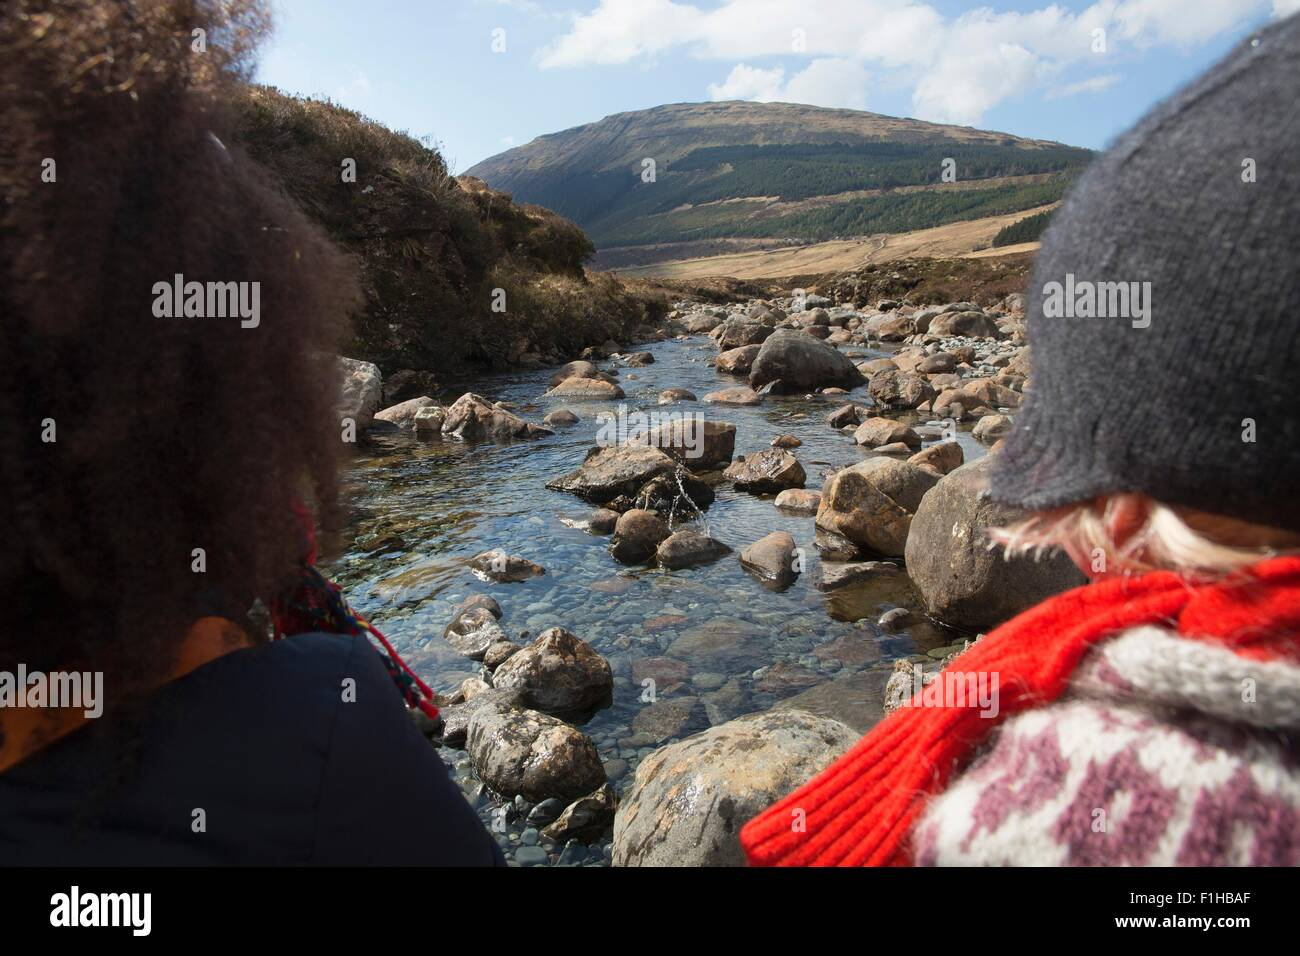 Woman and boy looking at view, Fairy Pools, Isle of Skye, Hebrides, Scotland - Stock Image